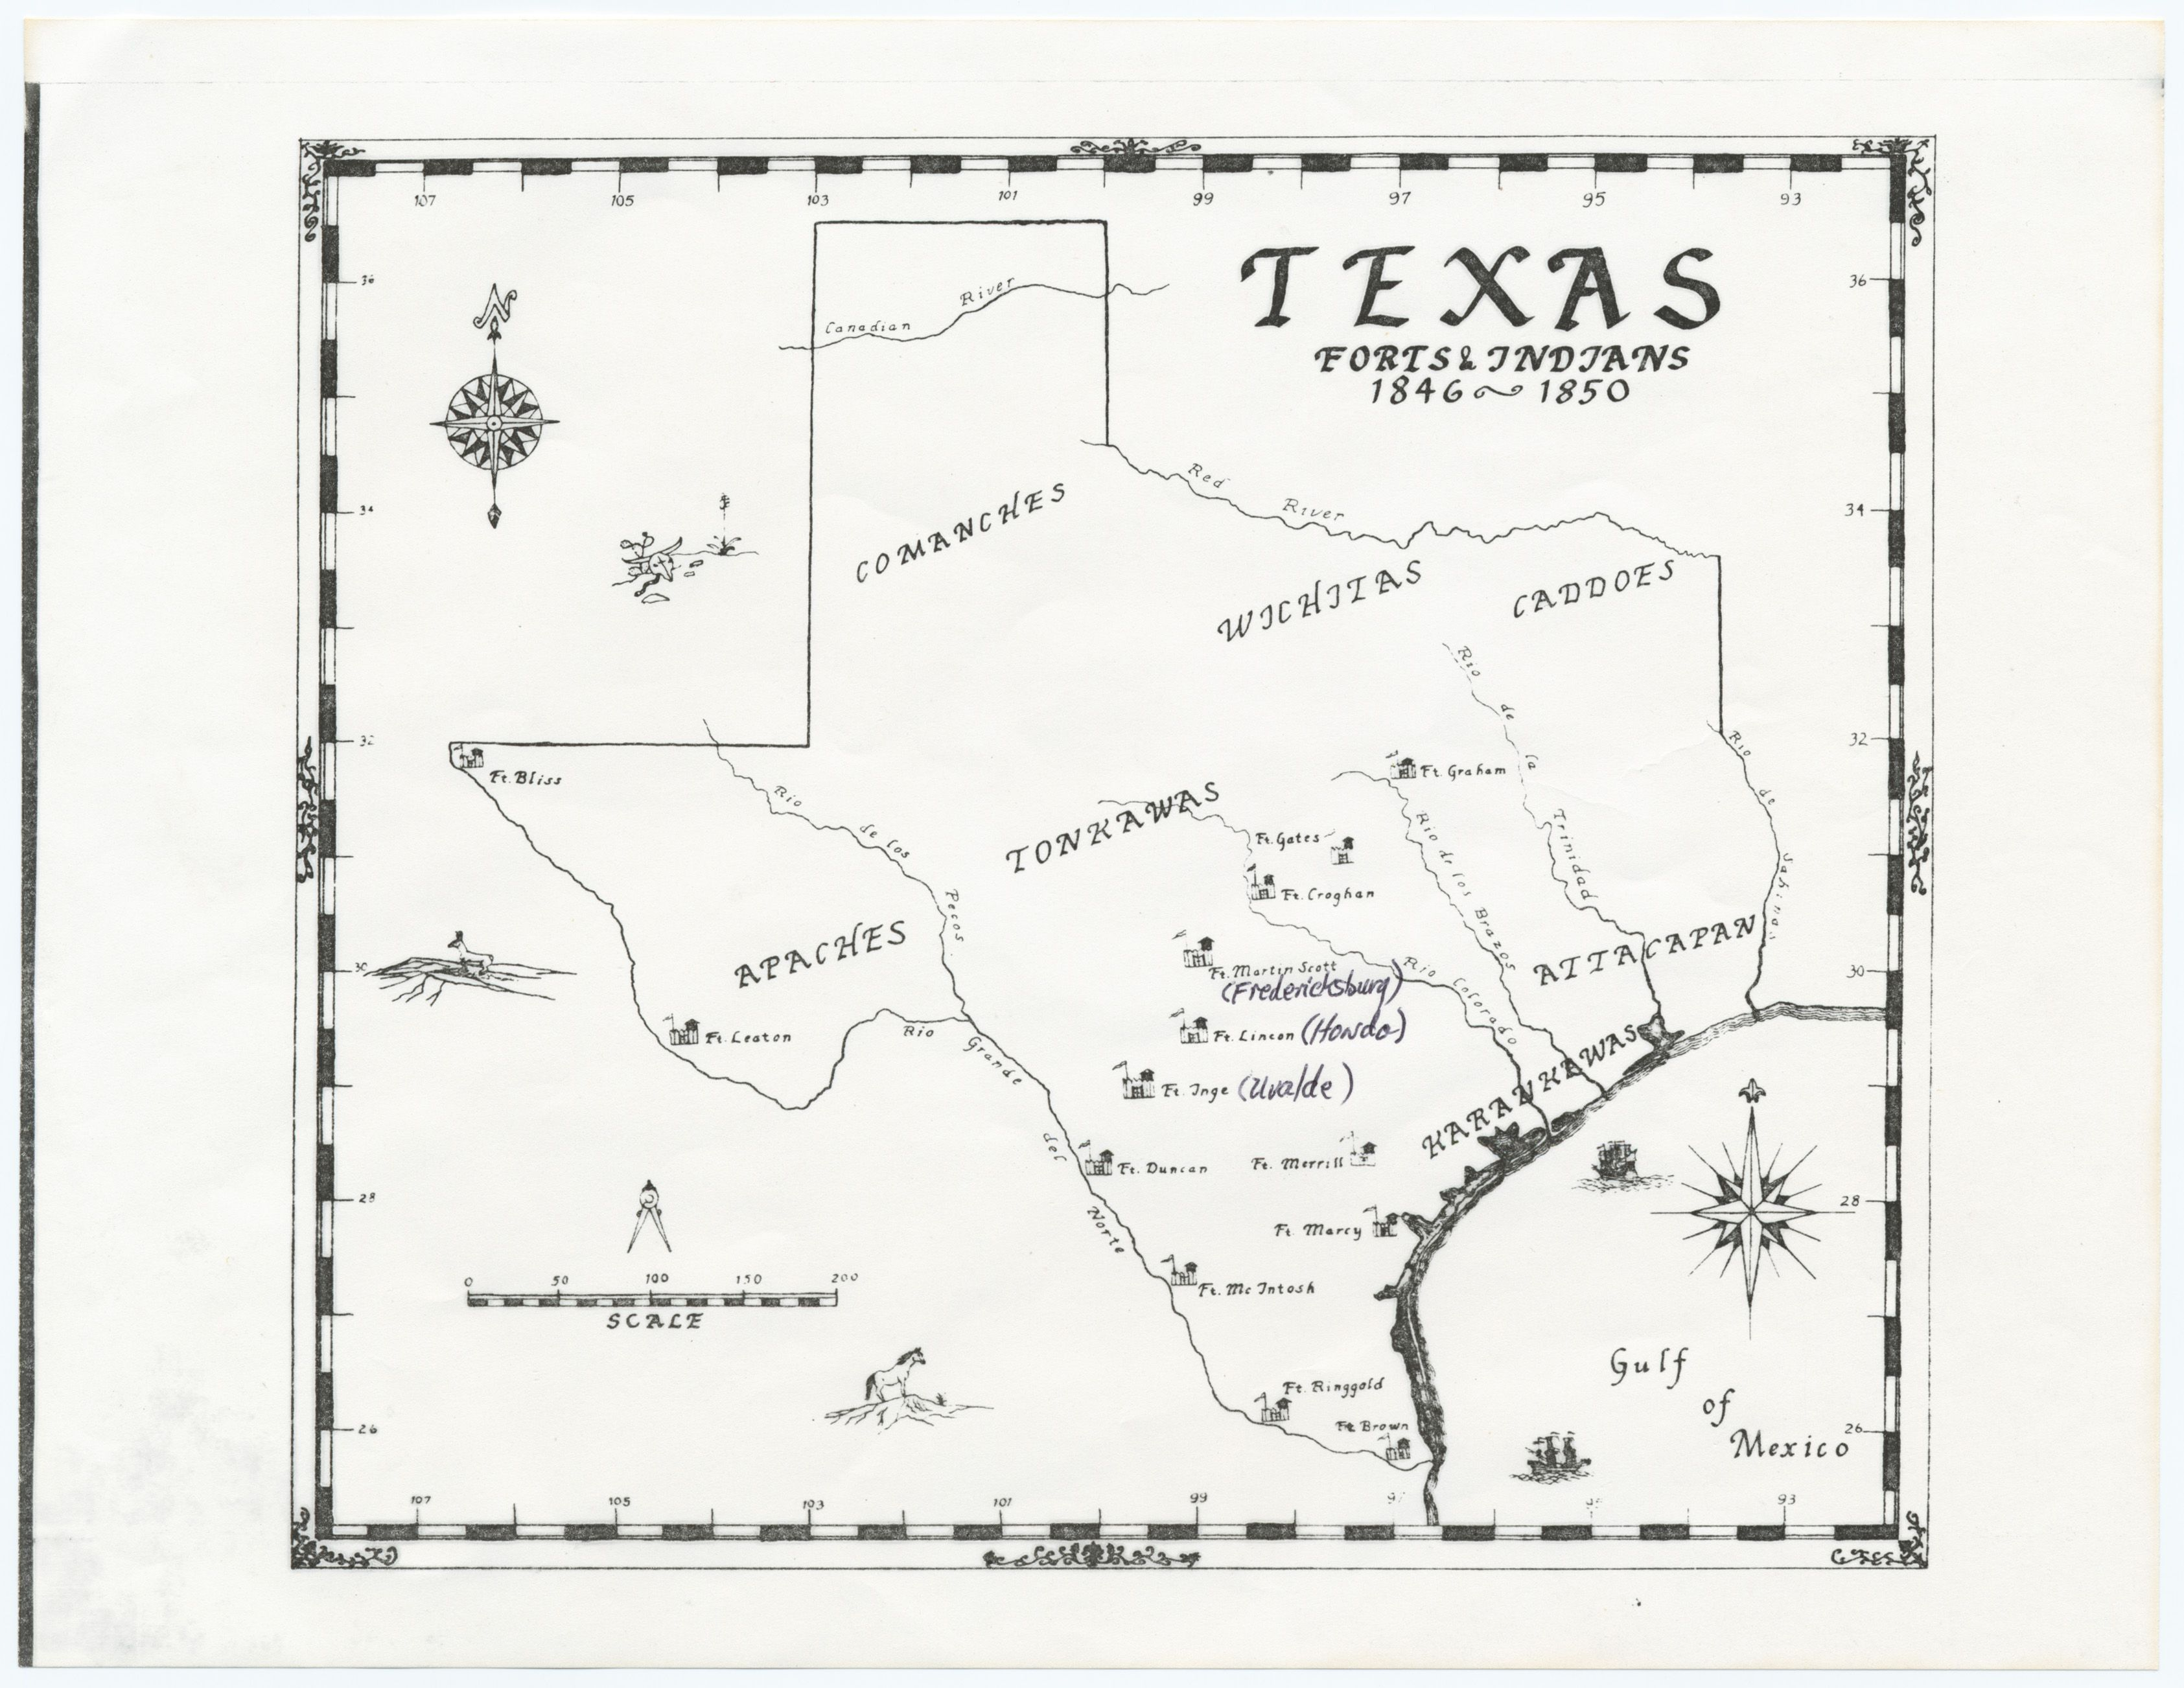 A Map Of Texas Forts Indians Between 1846 1850 Stored In The Sam Houston